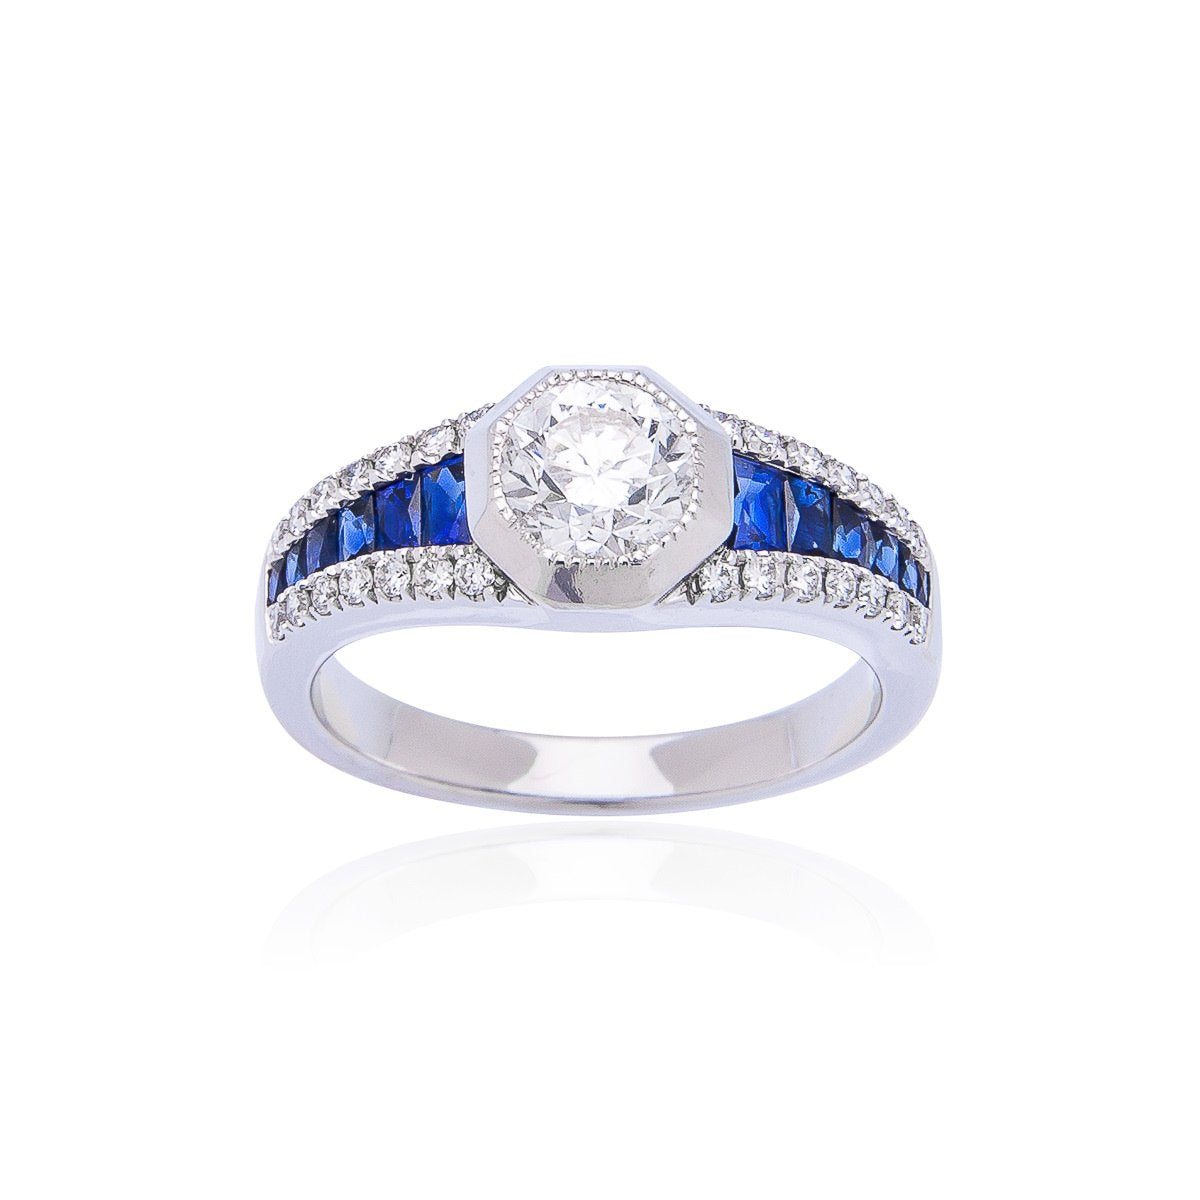 90ct Diamond Ring With Sapphire Accents Sabel Fink S